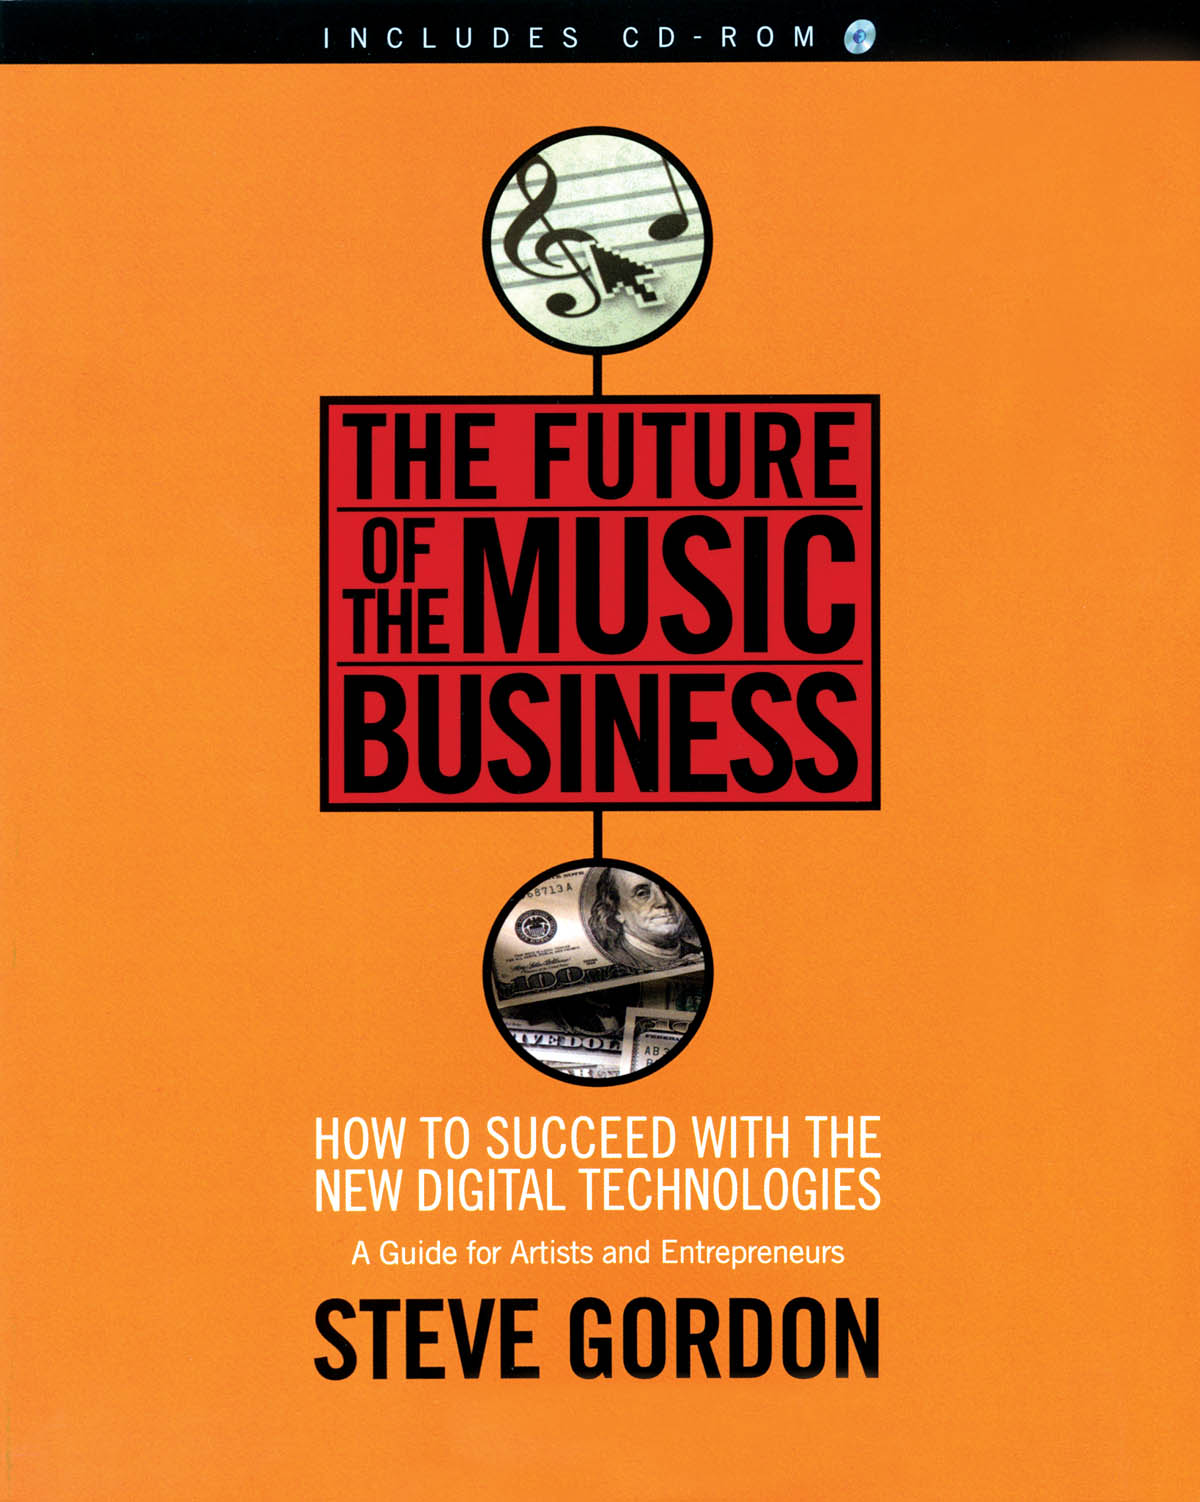 The Future of the Music Business